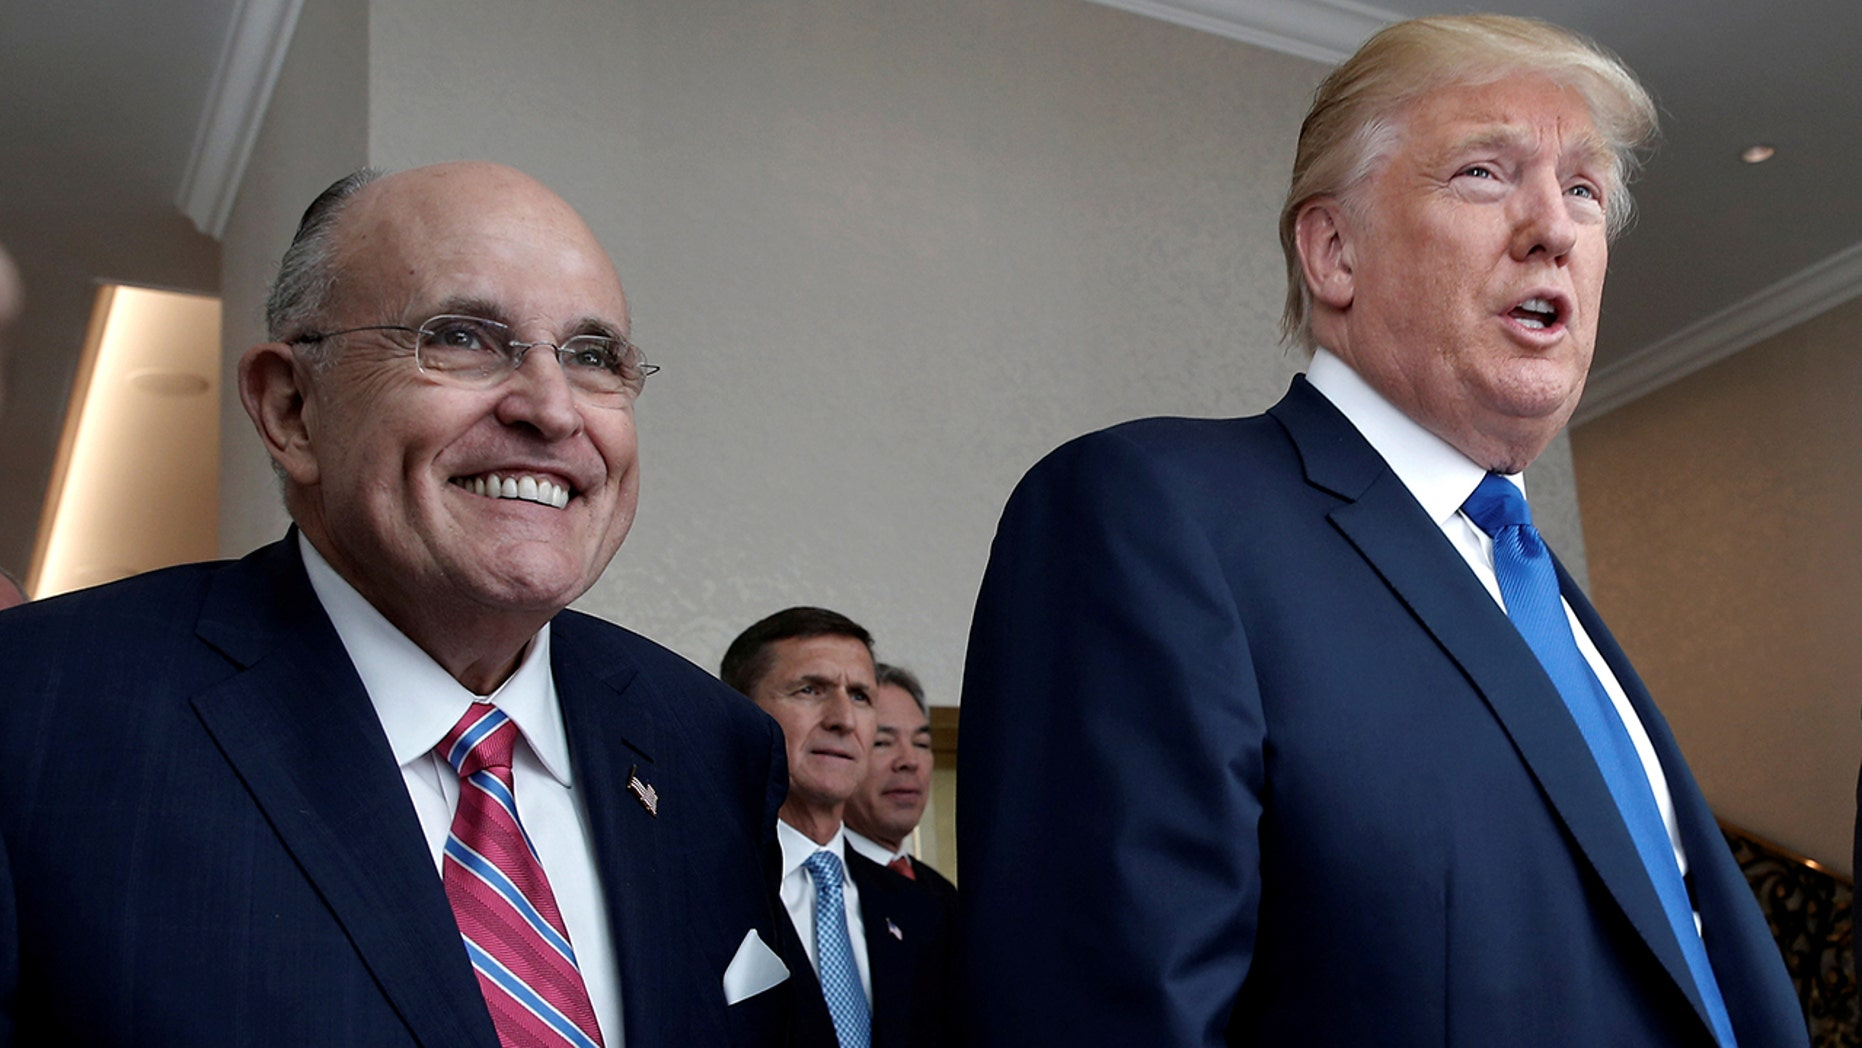 Rudy Giuliani, seen above with President Trump in April, revealed details of Trump's burger order to The Washington Post.